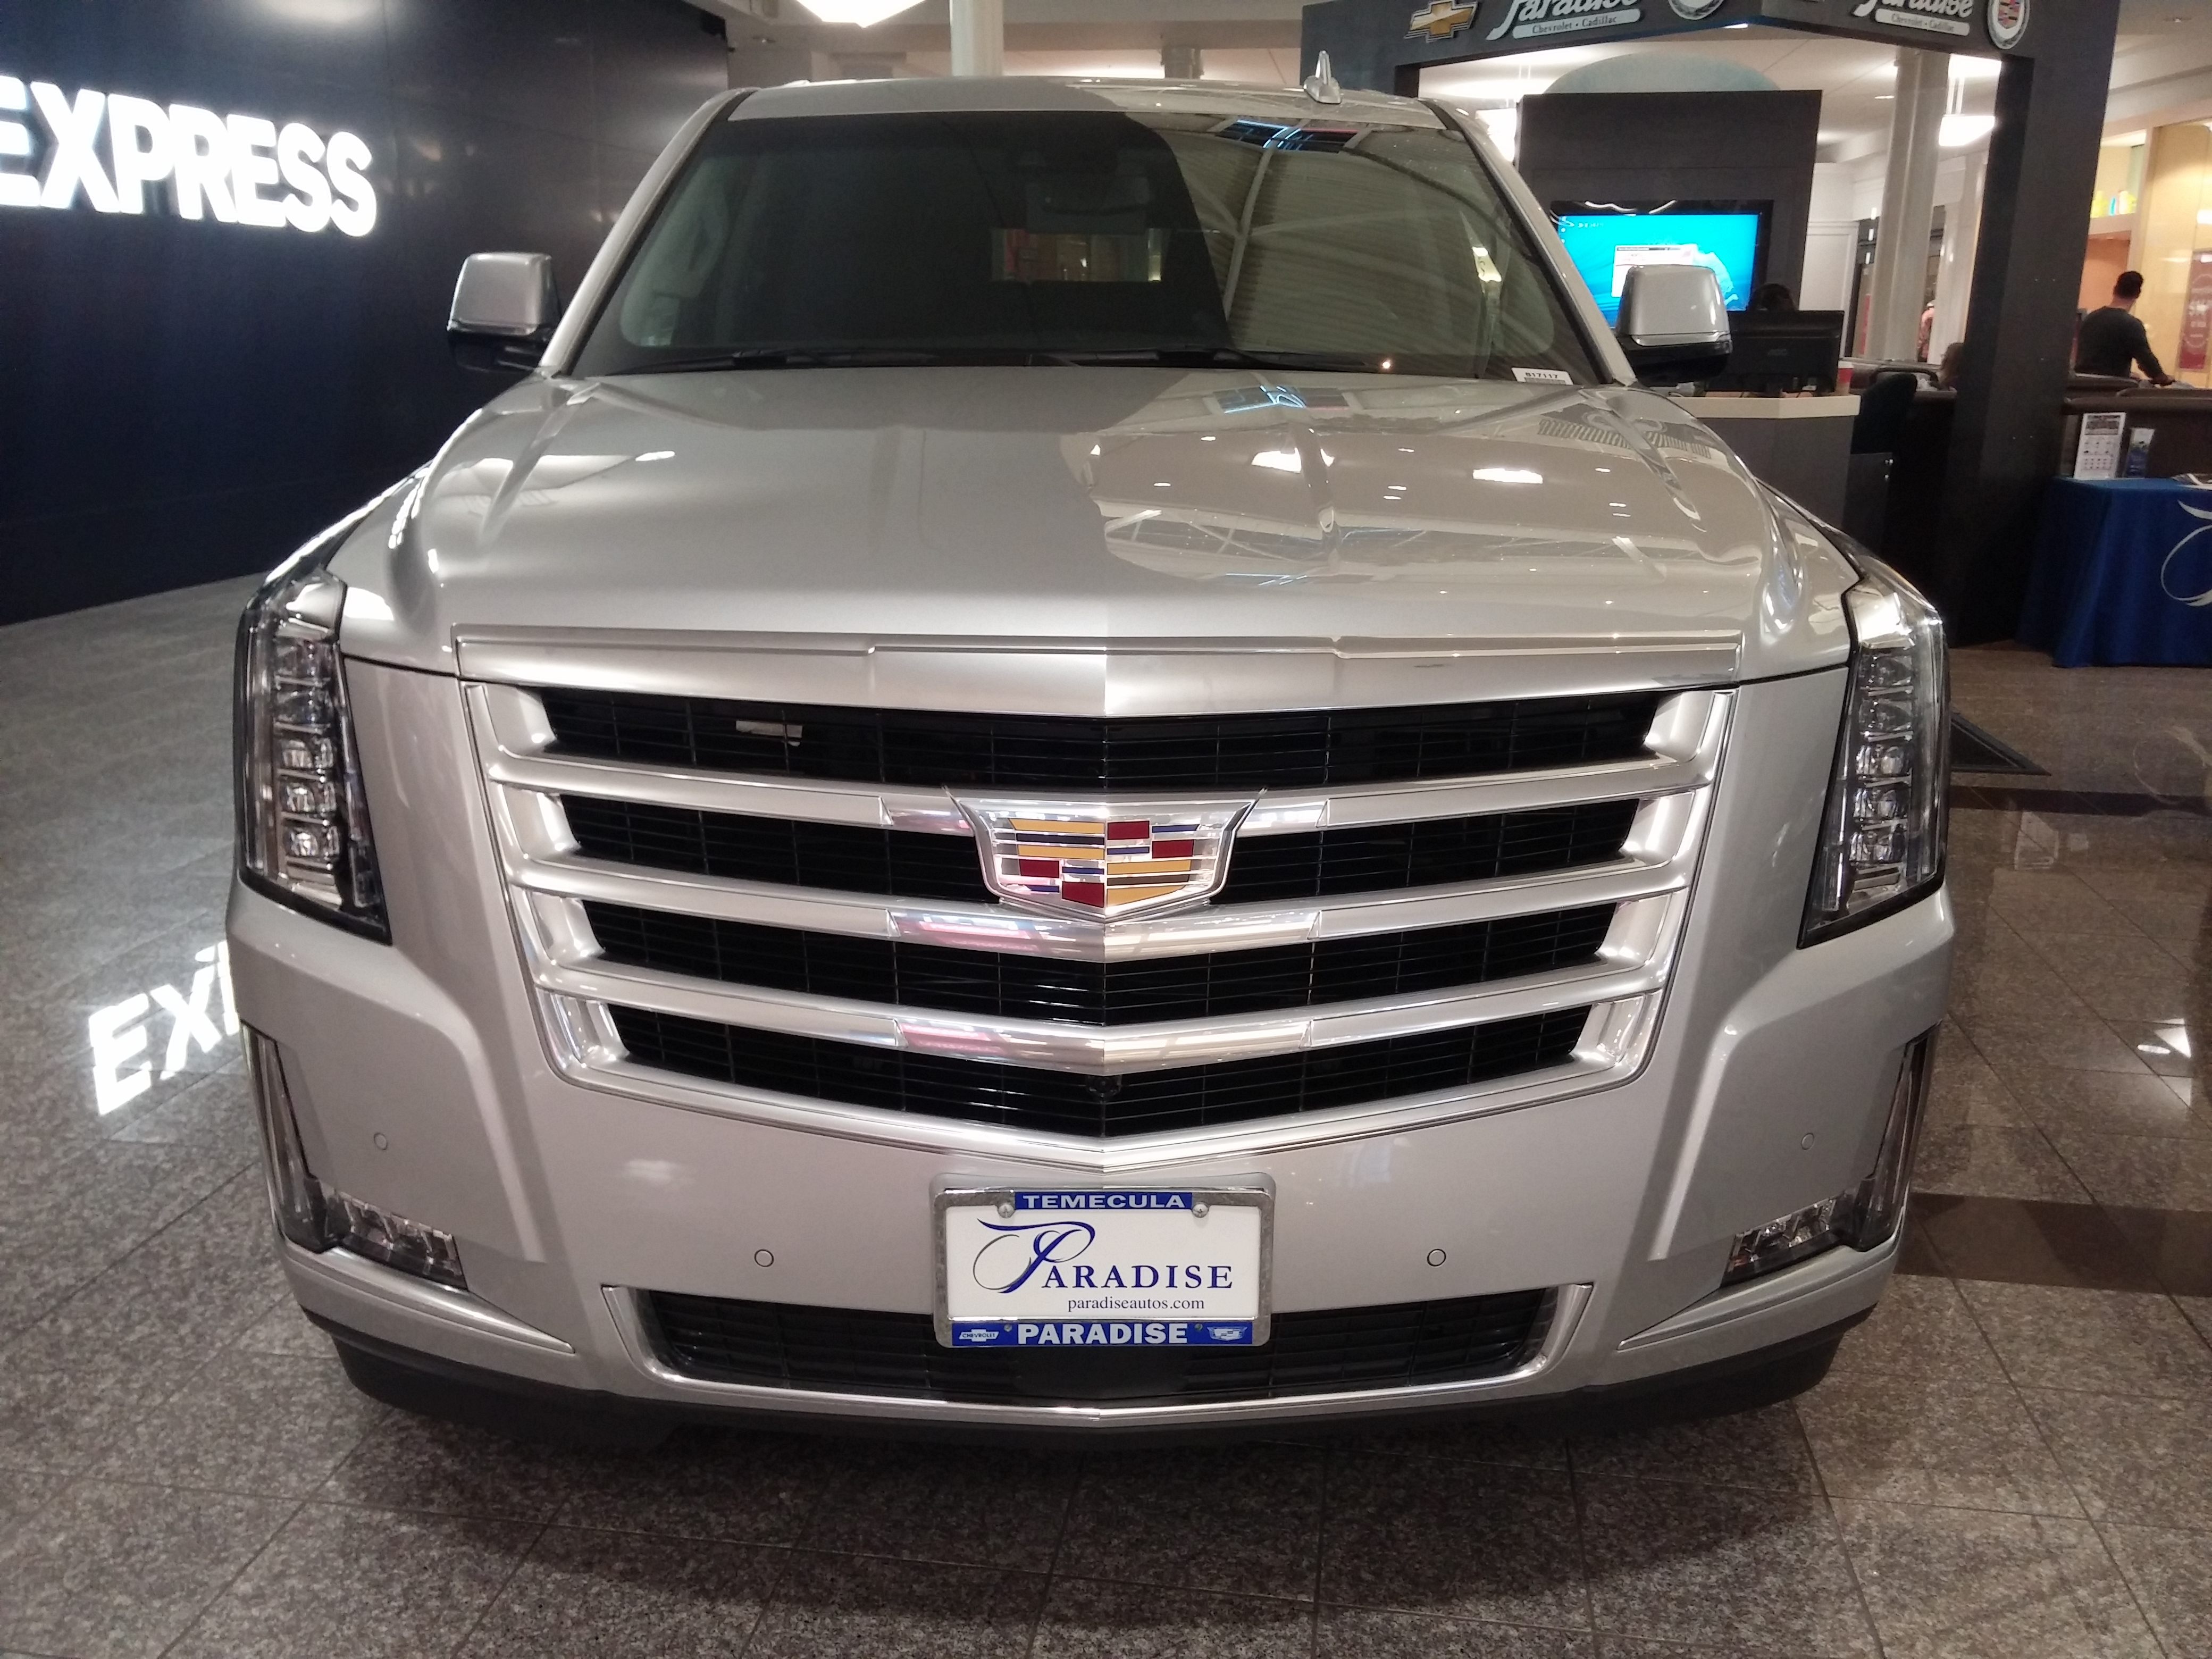 suv escalade 2017 used cadillac escalade suv pricing for sale edmunds. Black Bedroom Furniture Sets. Home Design Ideas